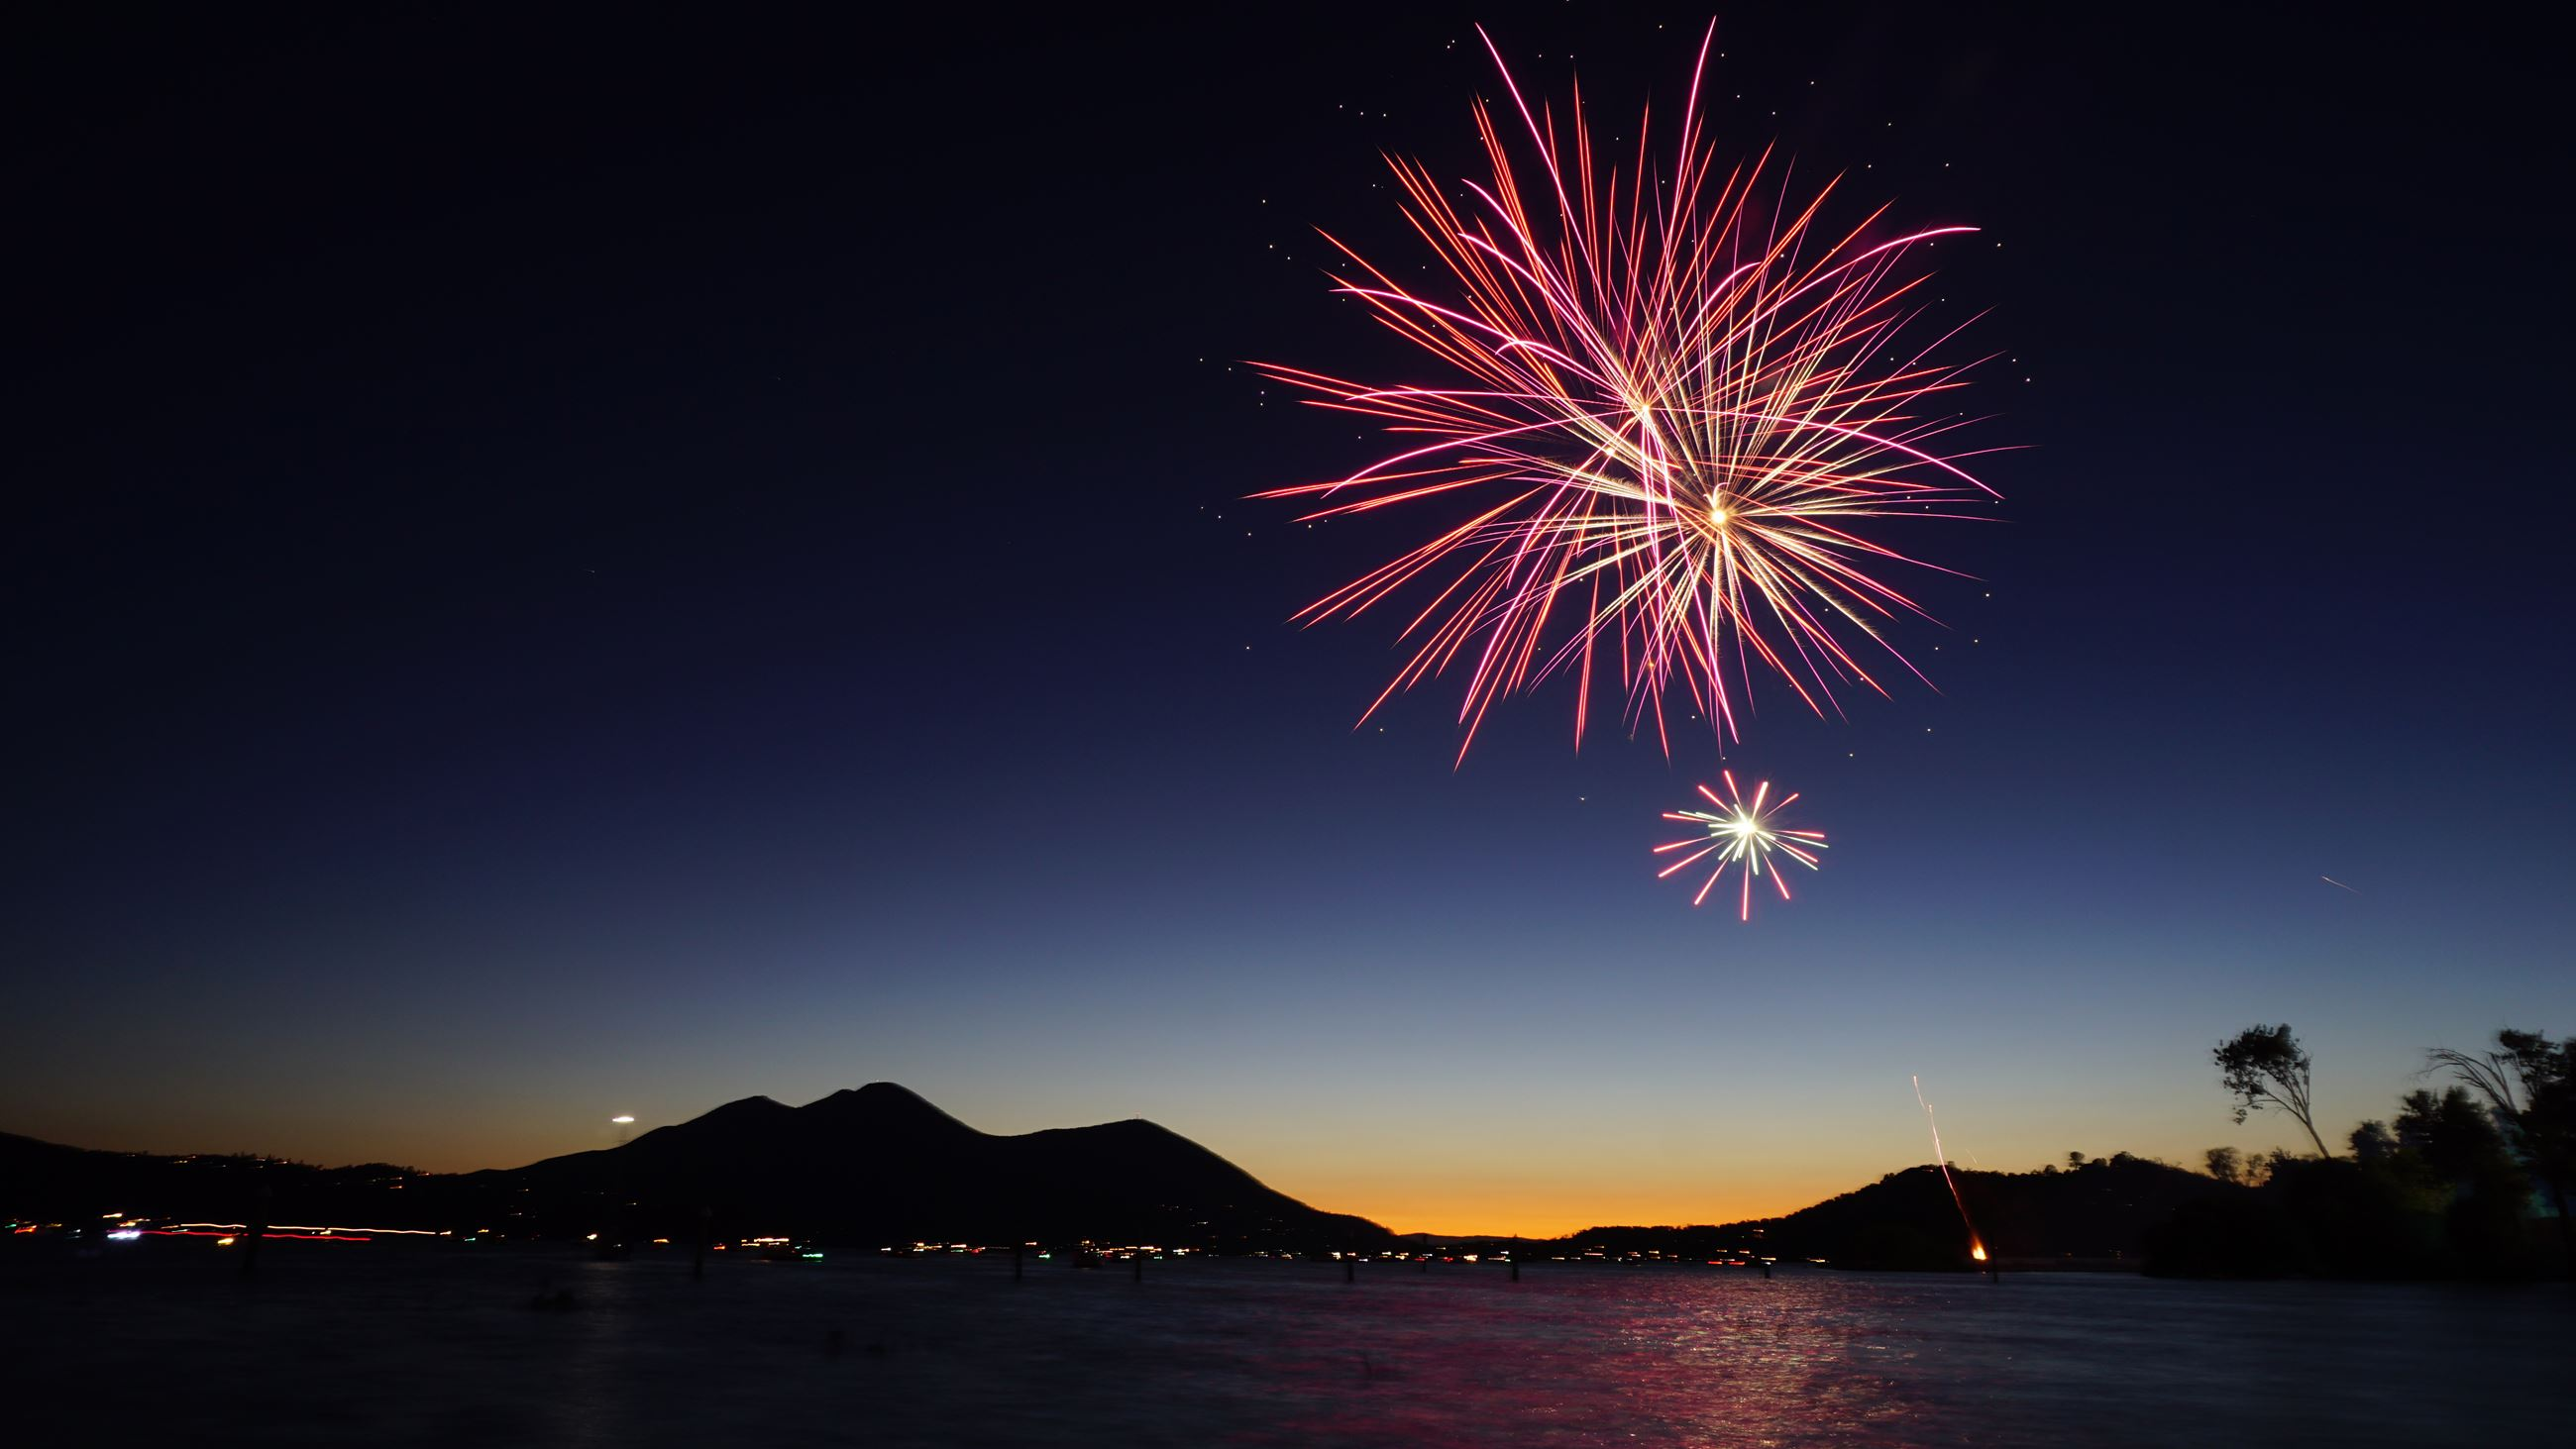 Photo of fireworks over Clearlake